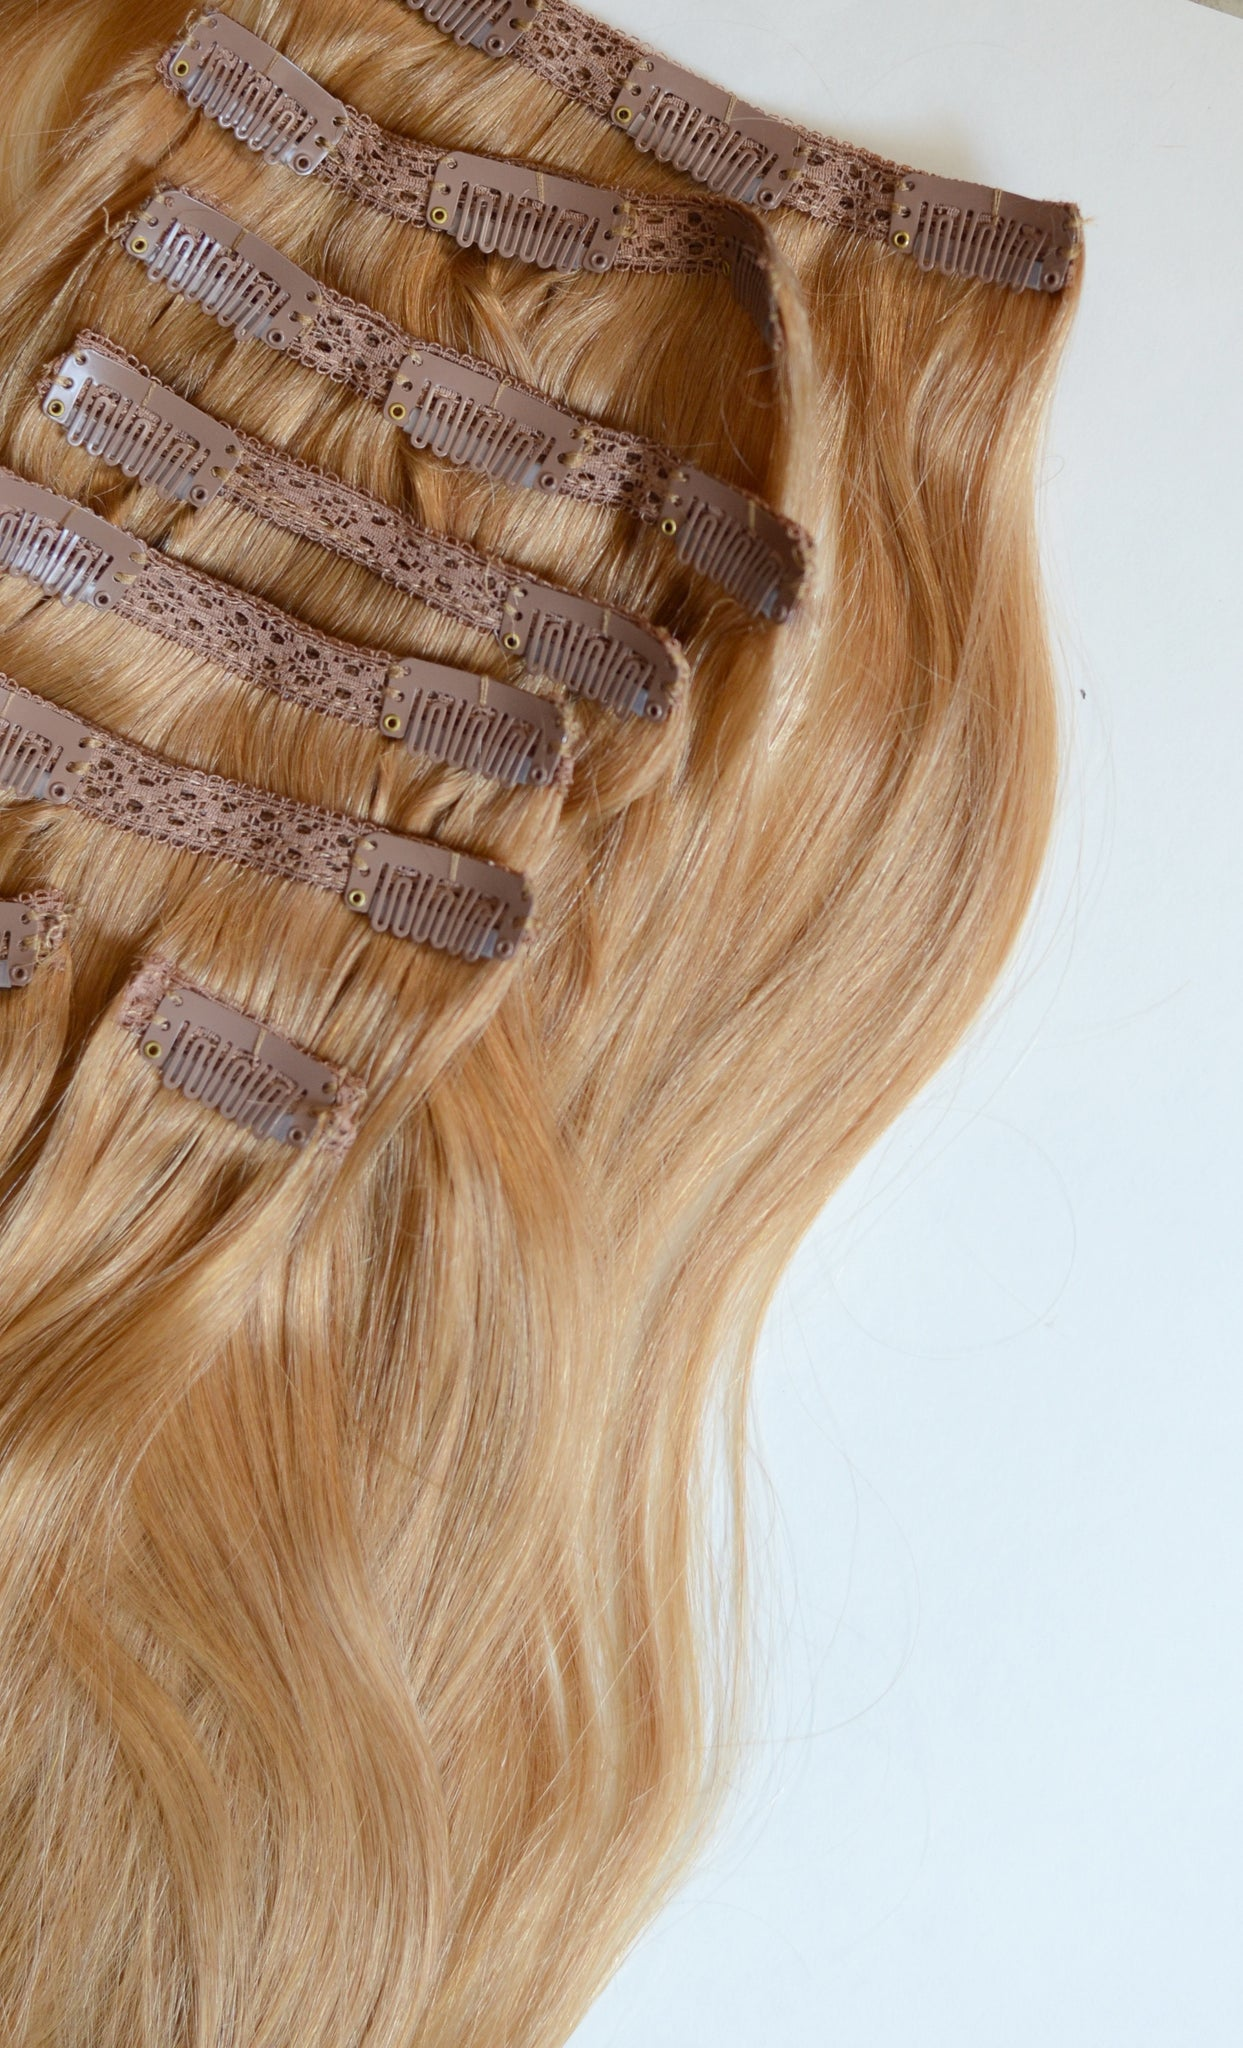 Strawberry Blonde Clip-In Hair Extensions - 20 inches / 200 gram full head set of 100% Remy clip-in human hair extensions